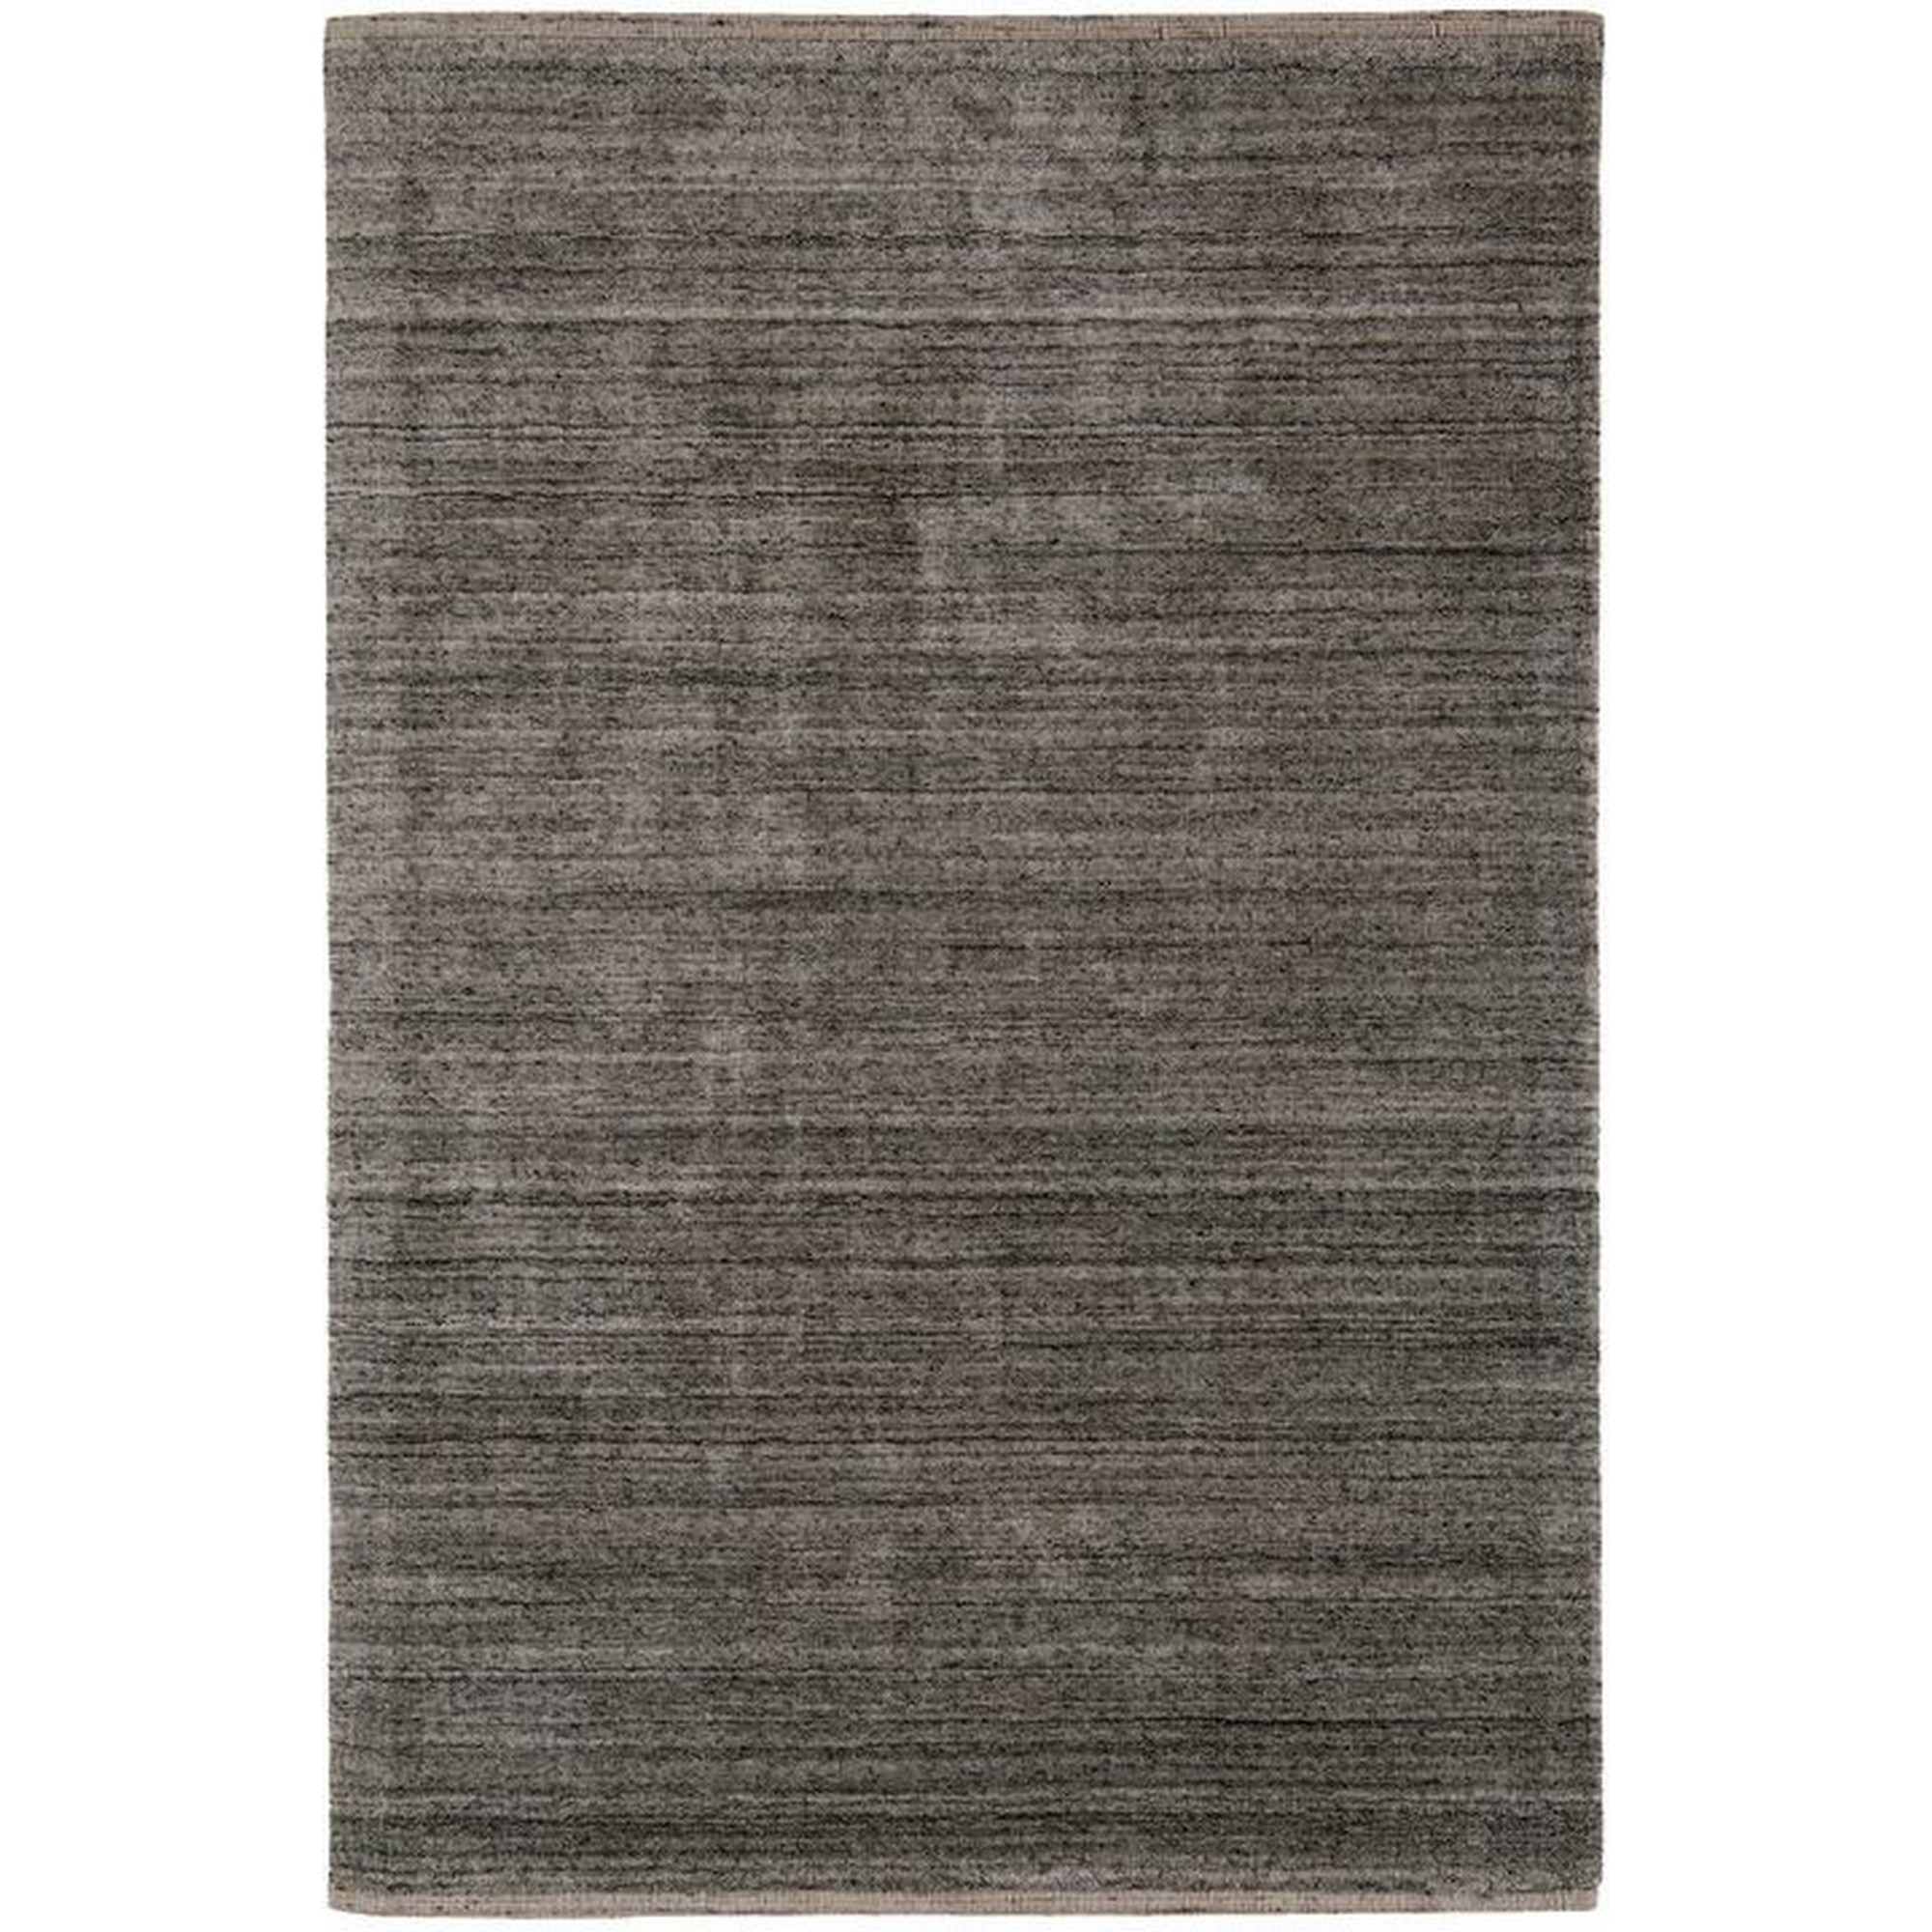 Linley Rugs in Charcoal